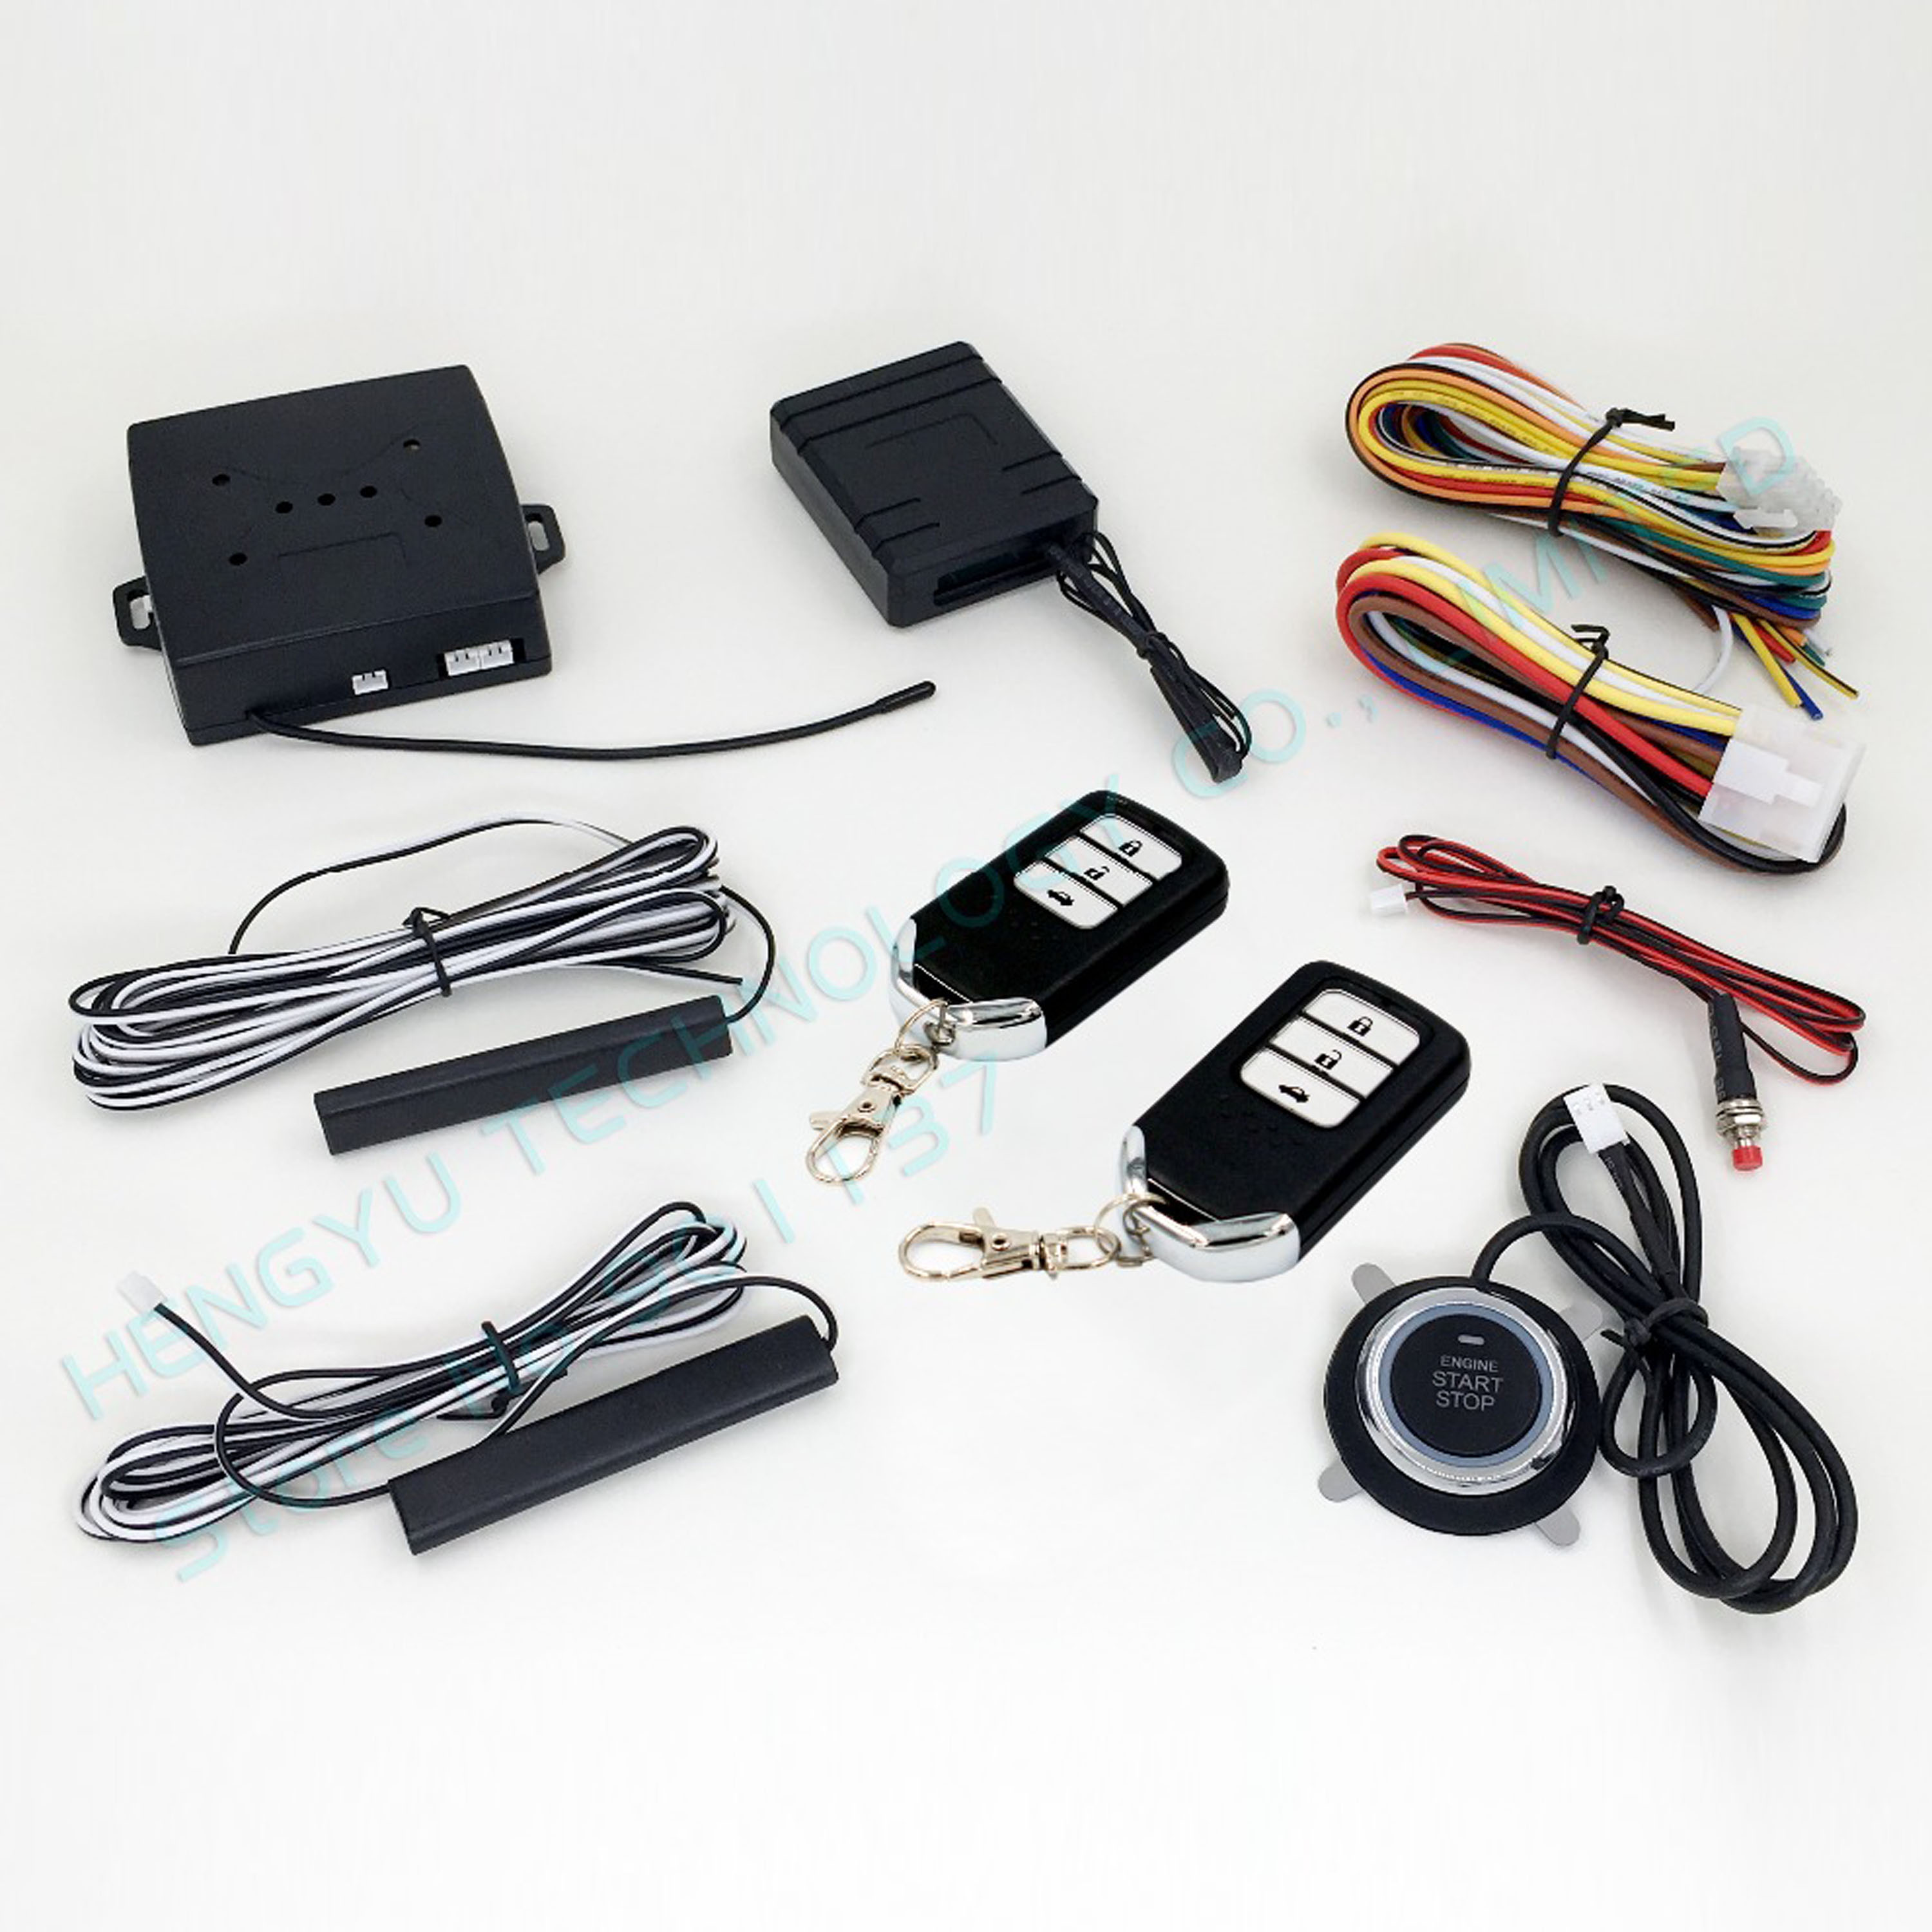 PKE car alarm system push button start stop button passive keyless entry remote engine start but